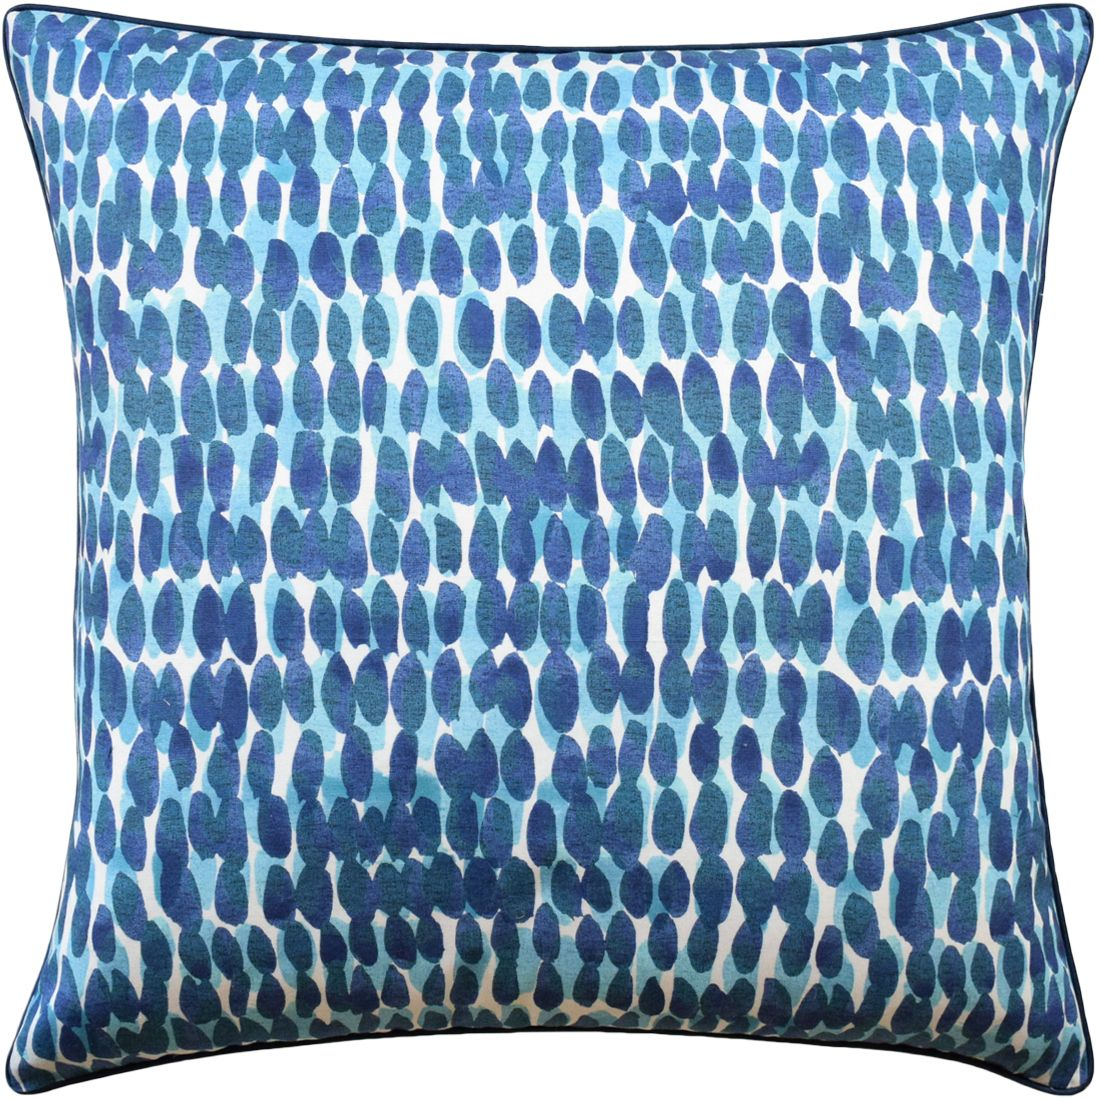 Rain Water Cotton Pillow In Blue And Turquoise Available In Different Sizes In 2020 Turquoise Pillows Pillows Turquoise Bedding